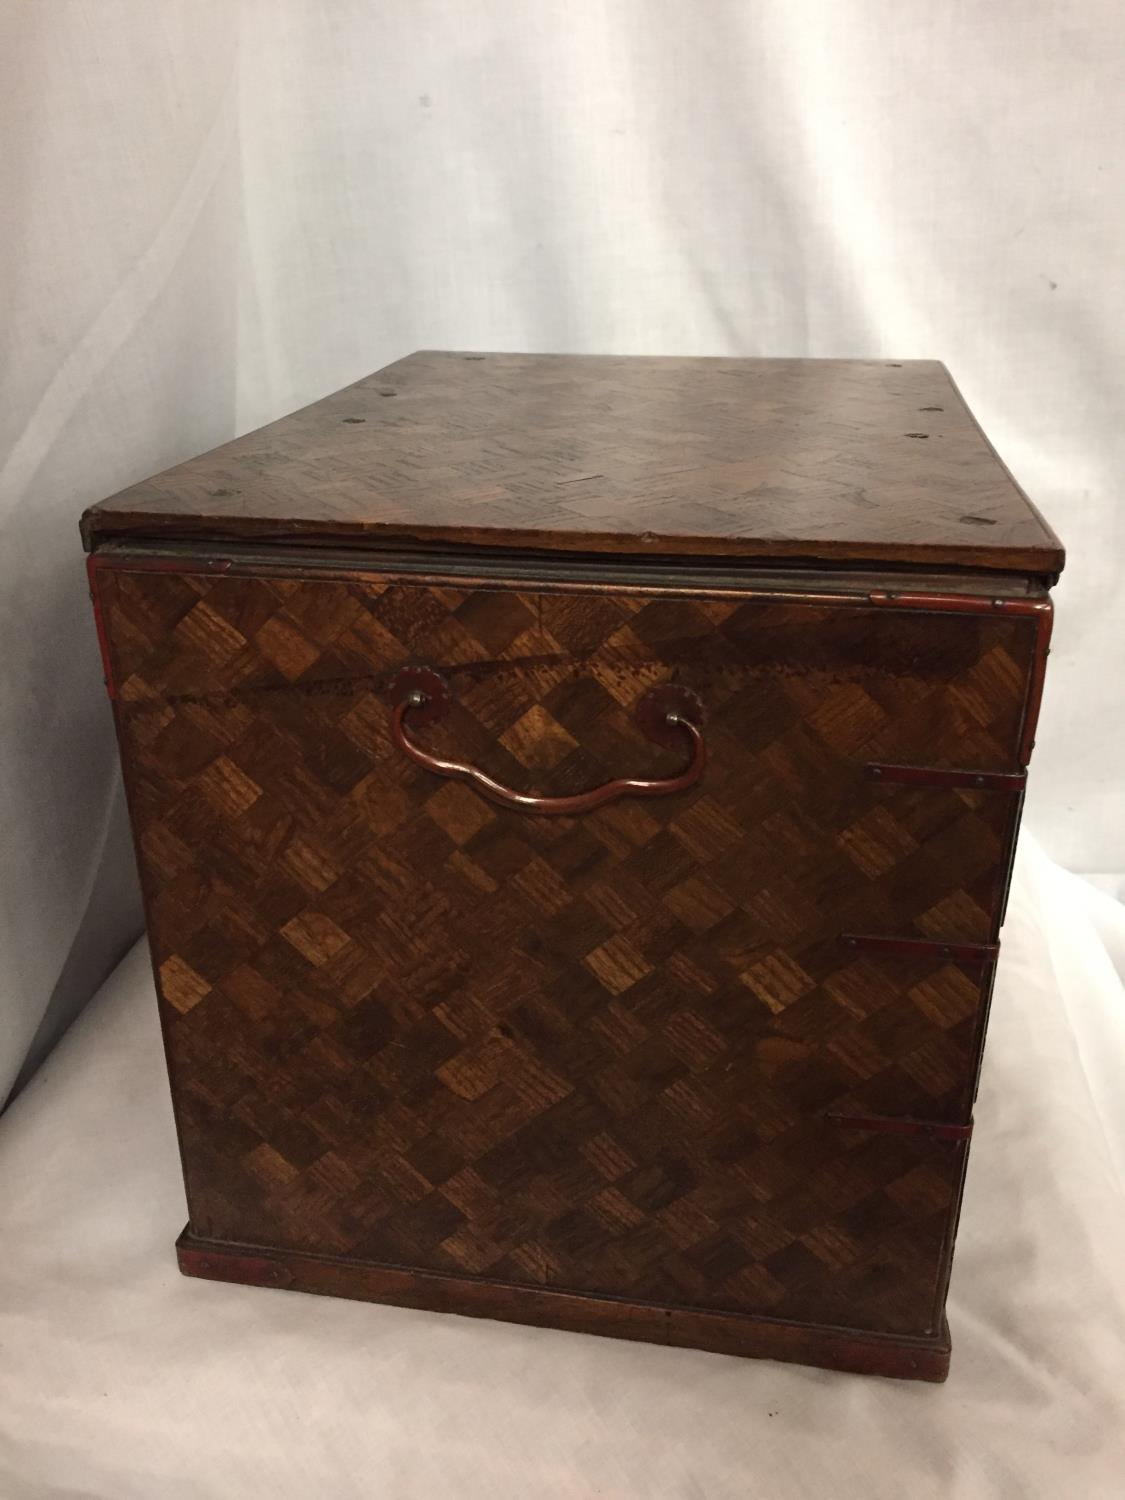 A MINATURE PARQUE WOODEN CHEST WITH DRAWERS 32CM X 26CM - Image 5 of 6